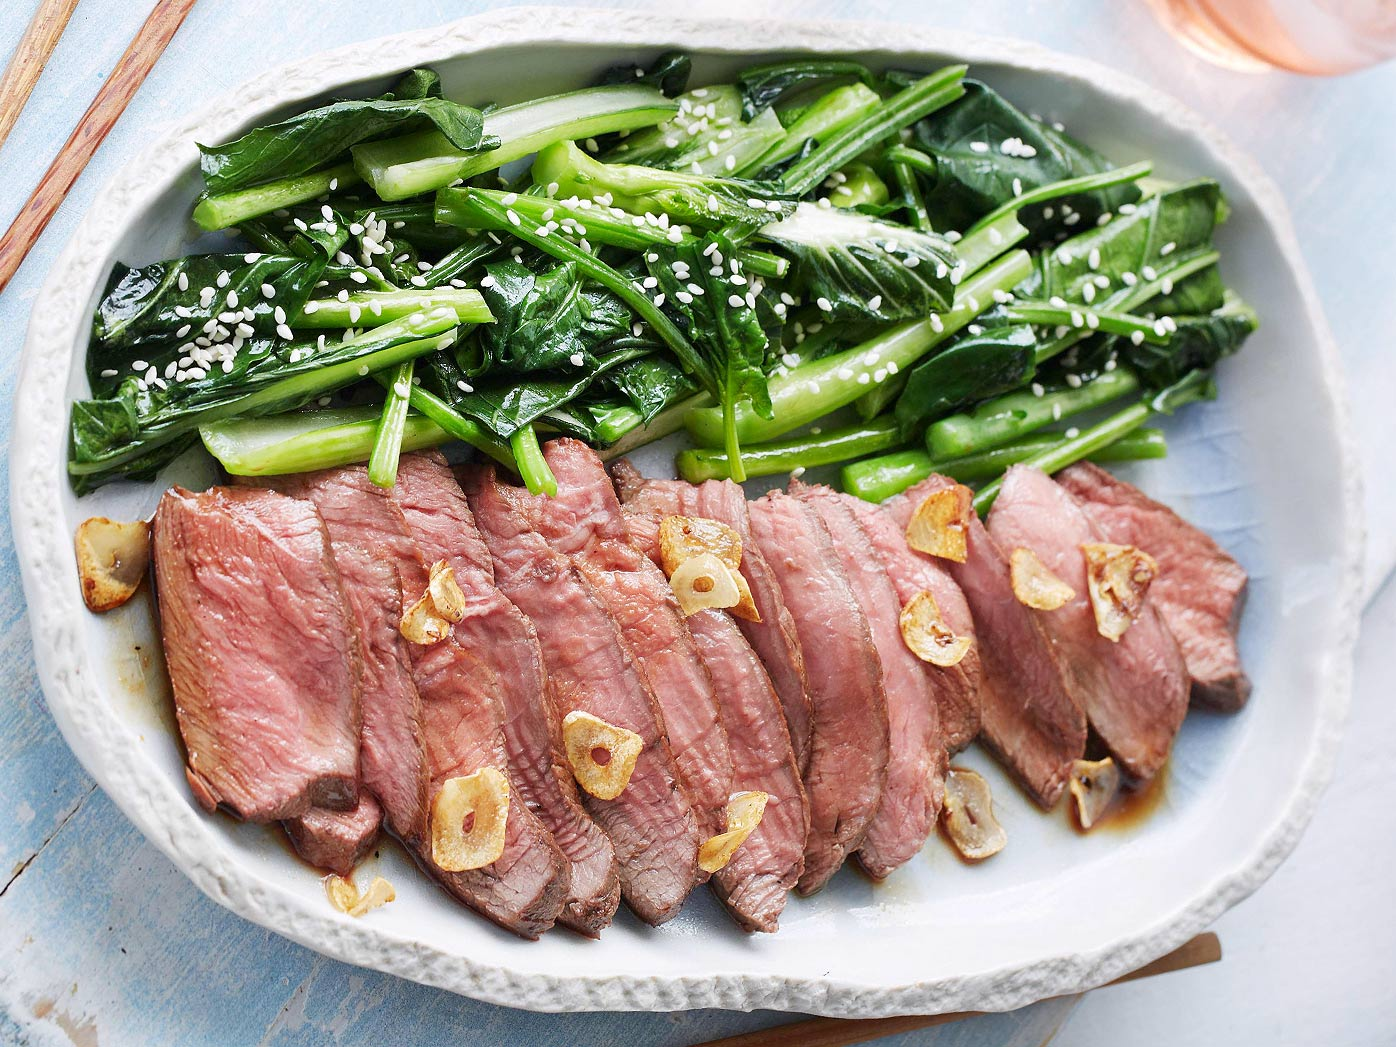 Adam Liaw's teriyaki steak with Asian greens